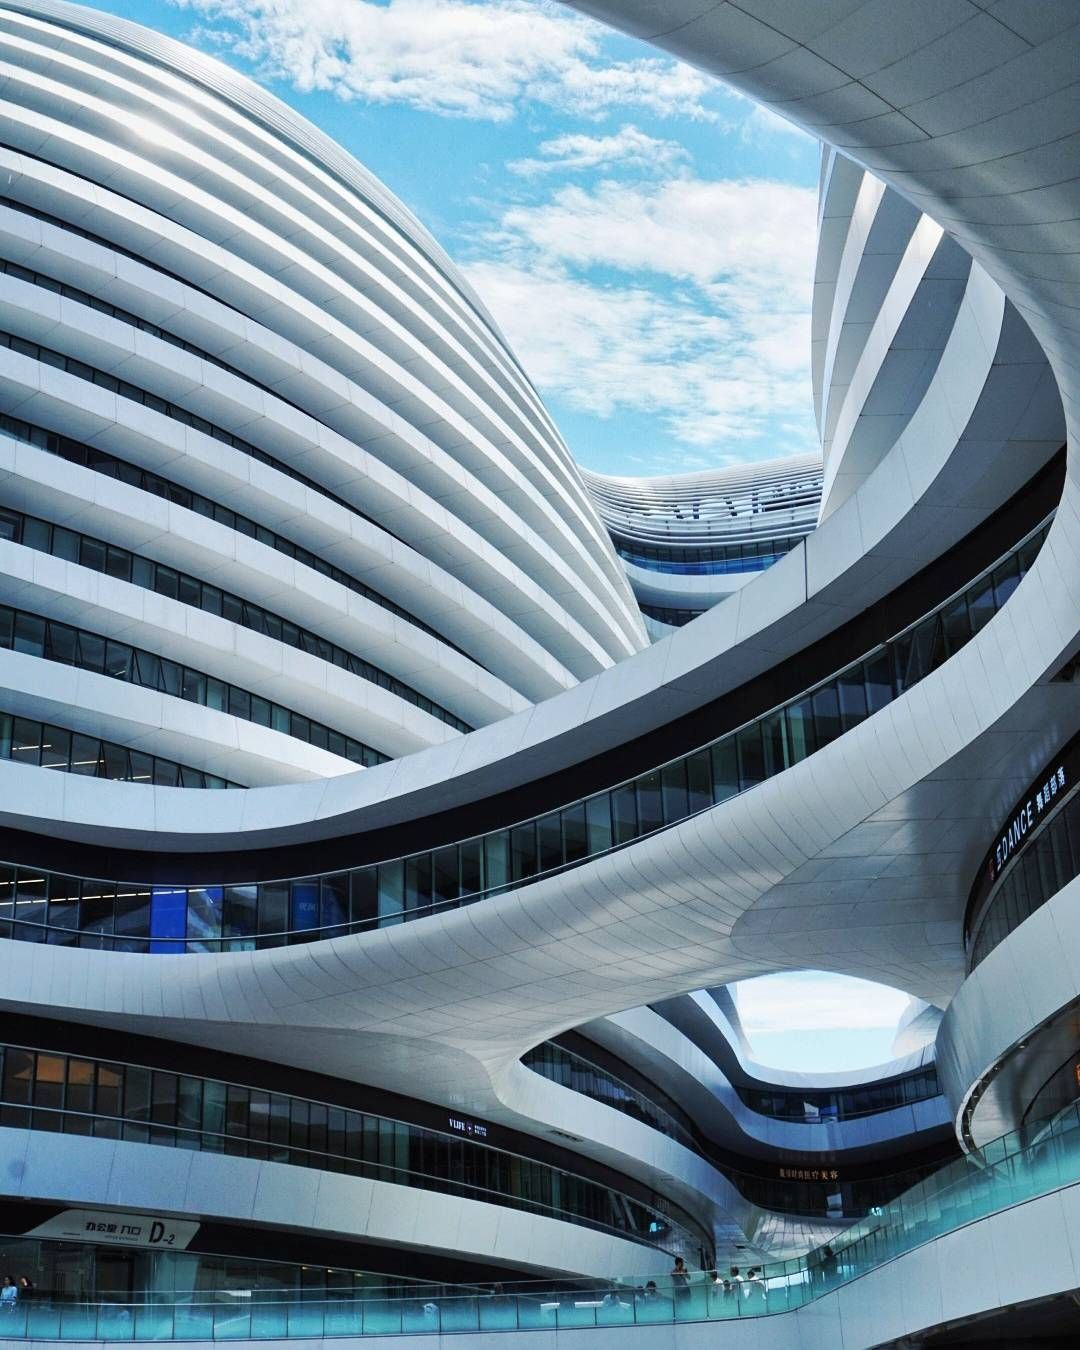 Inspiring buildings by the iconic zaha hadid dudu 39 s choice arquitectura arquitectura - Hadid architetto ...